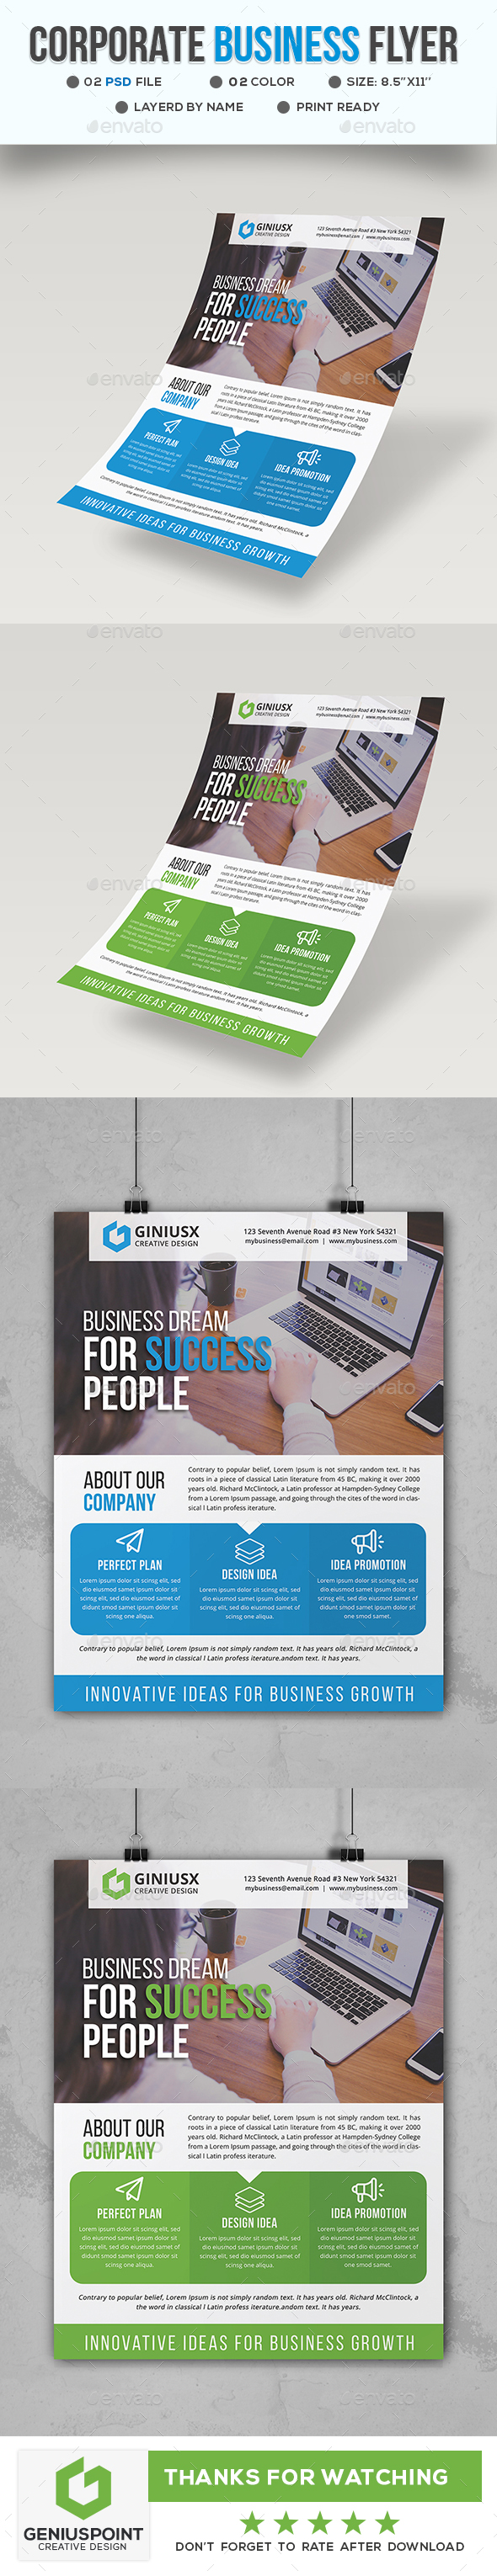 GraphicRiver Corporate Business Flyer 21197420